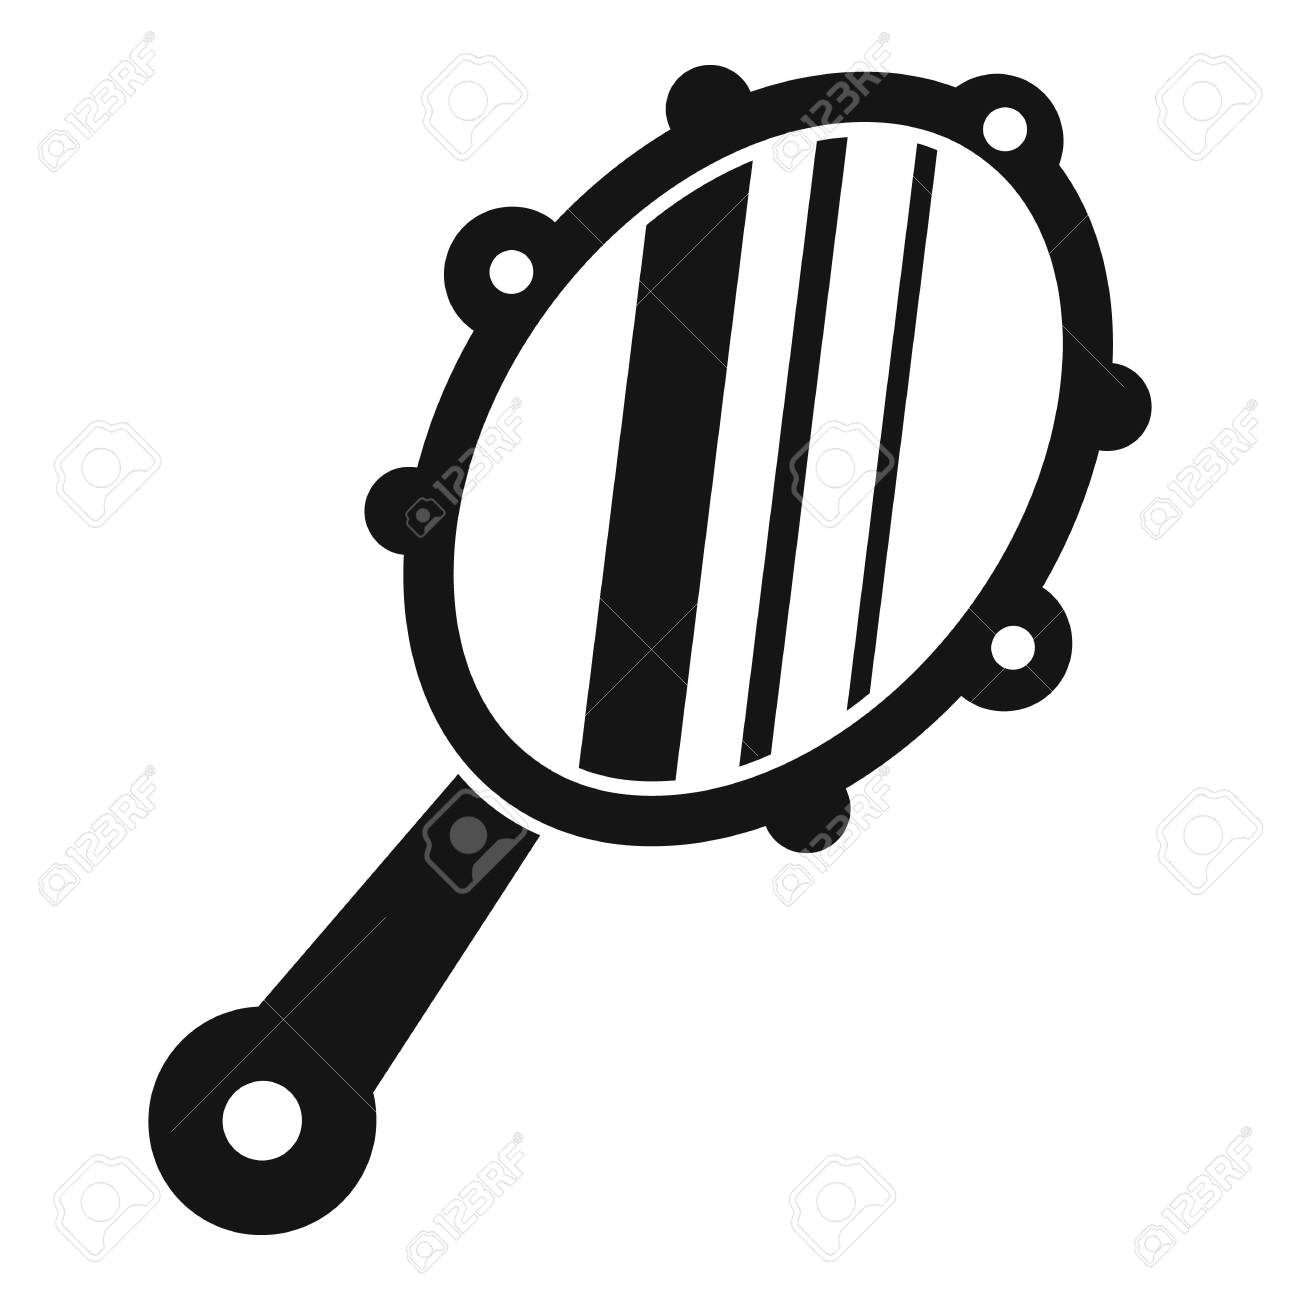 Hand mirror icon, simple style - 133489653